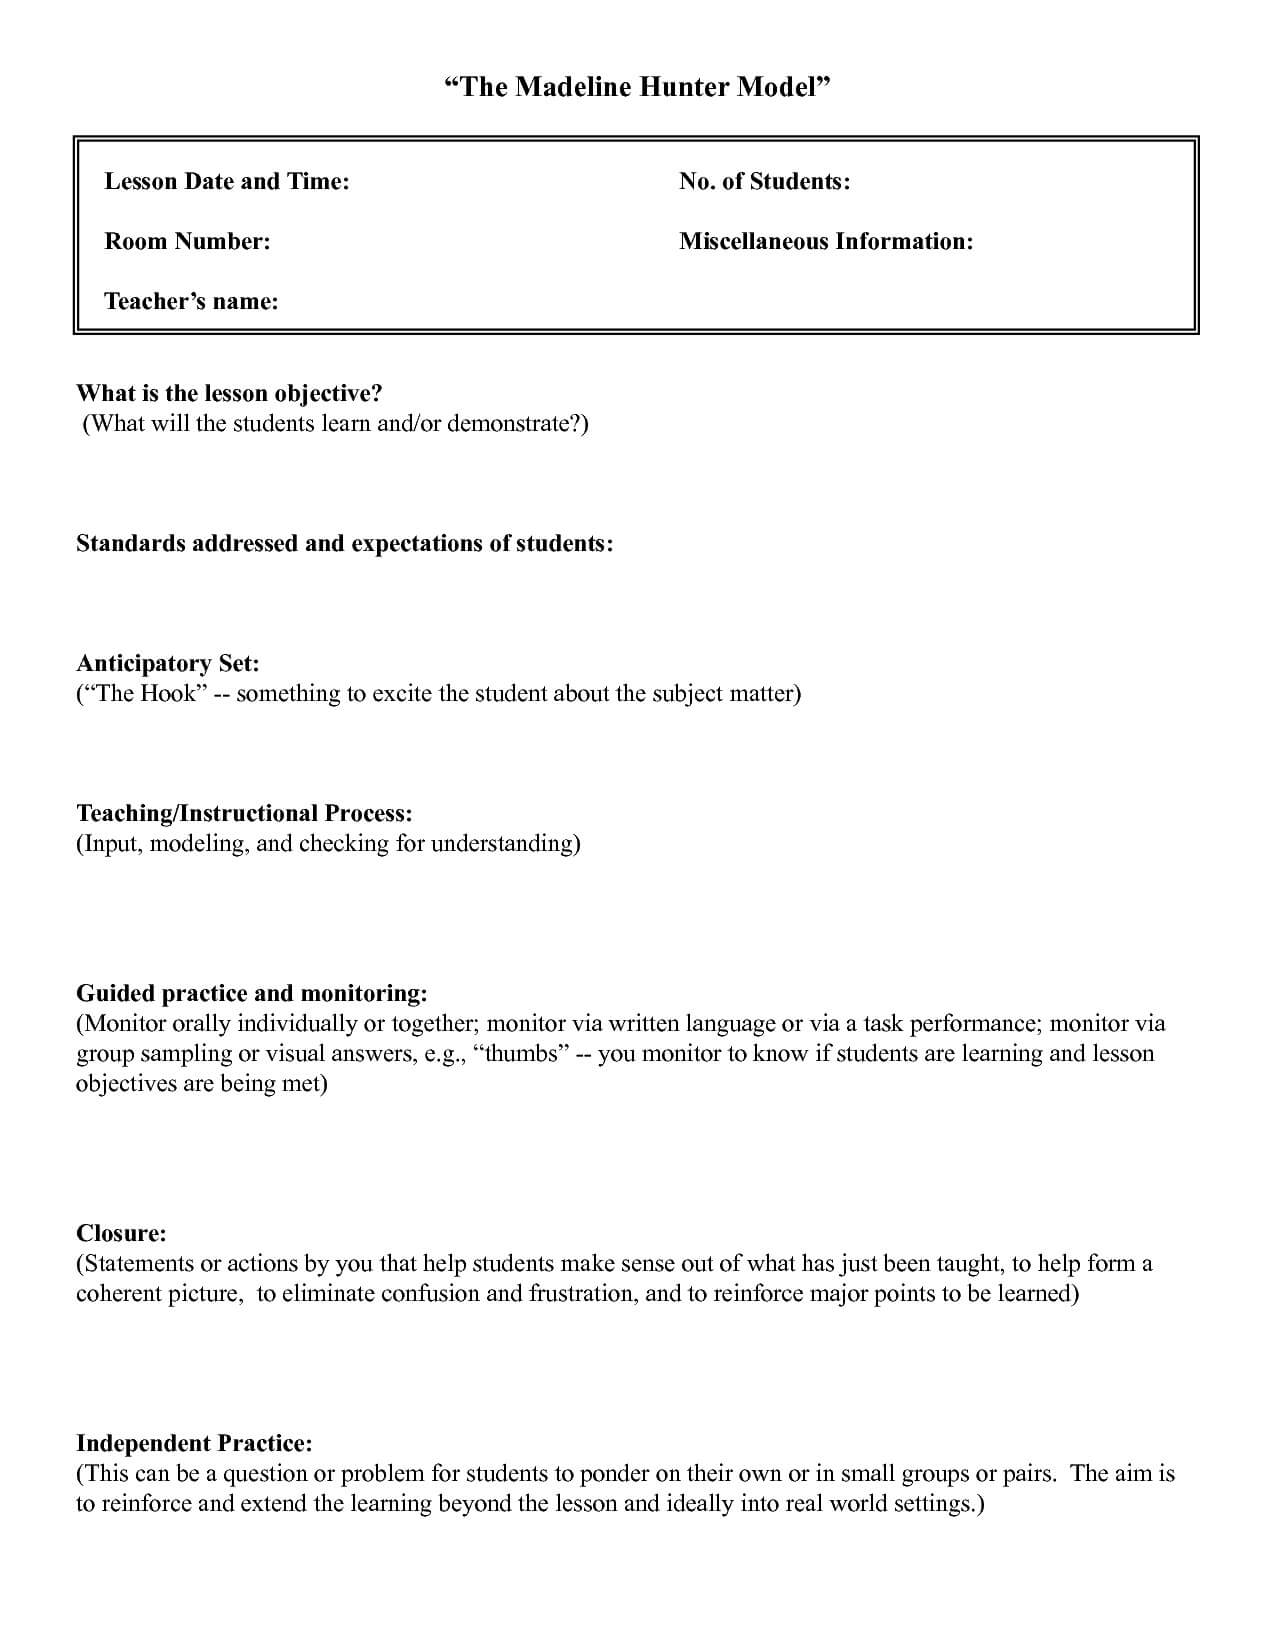 006 Template Ideas Madelineer Lesson Plan Best Business Throughout Madeline Hunter Lesson Plan Template Word